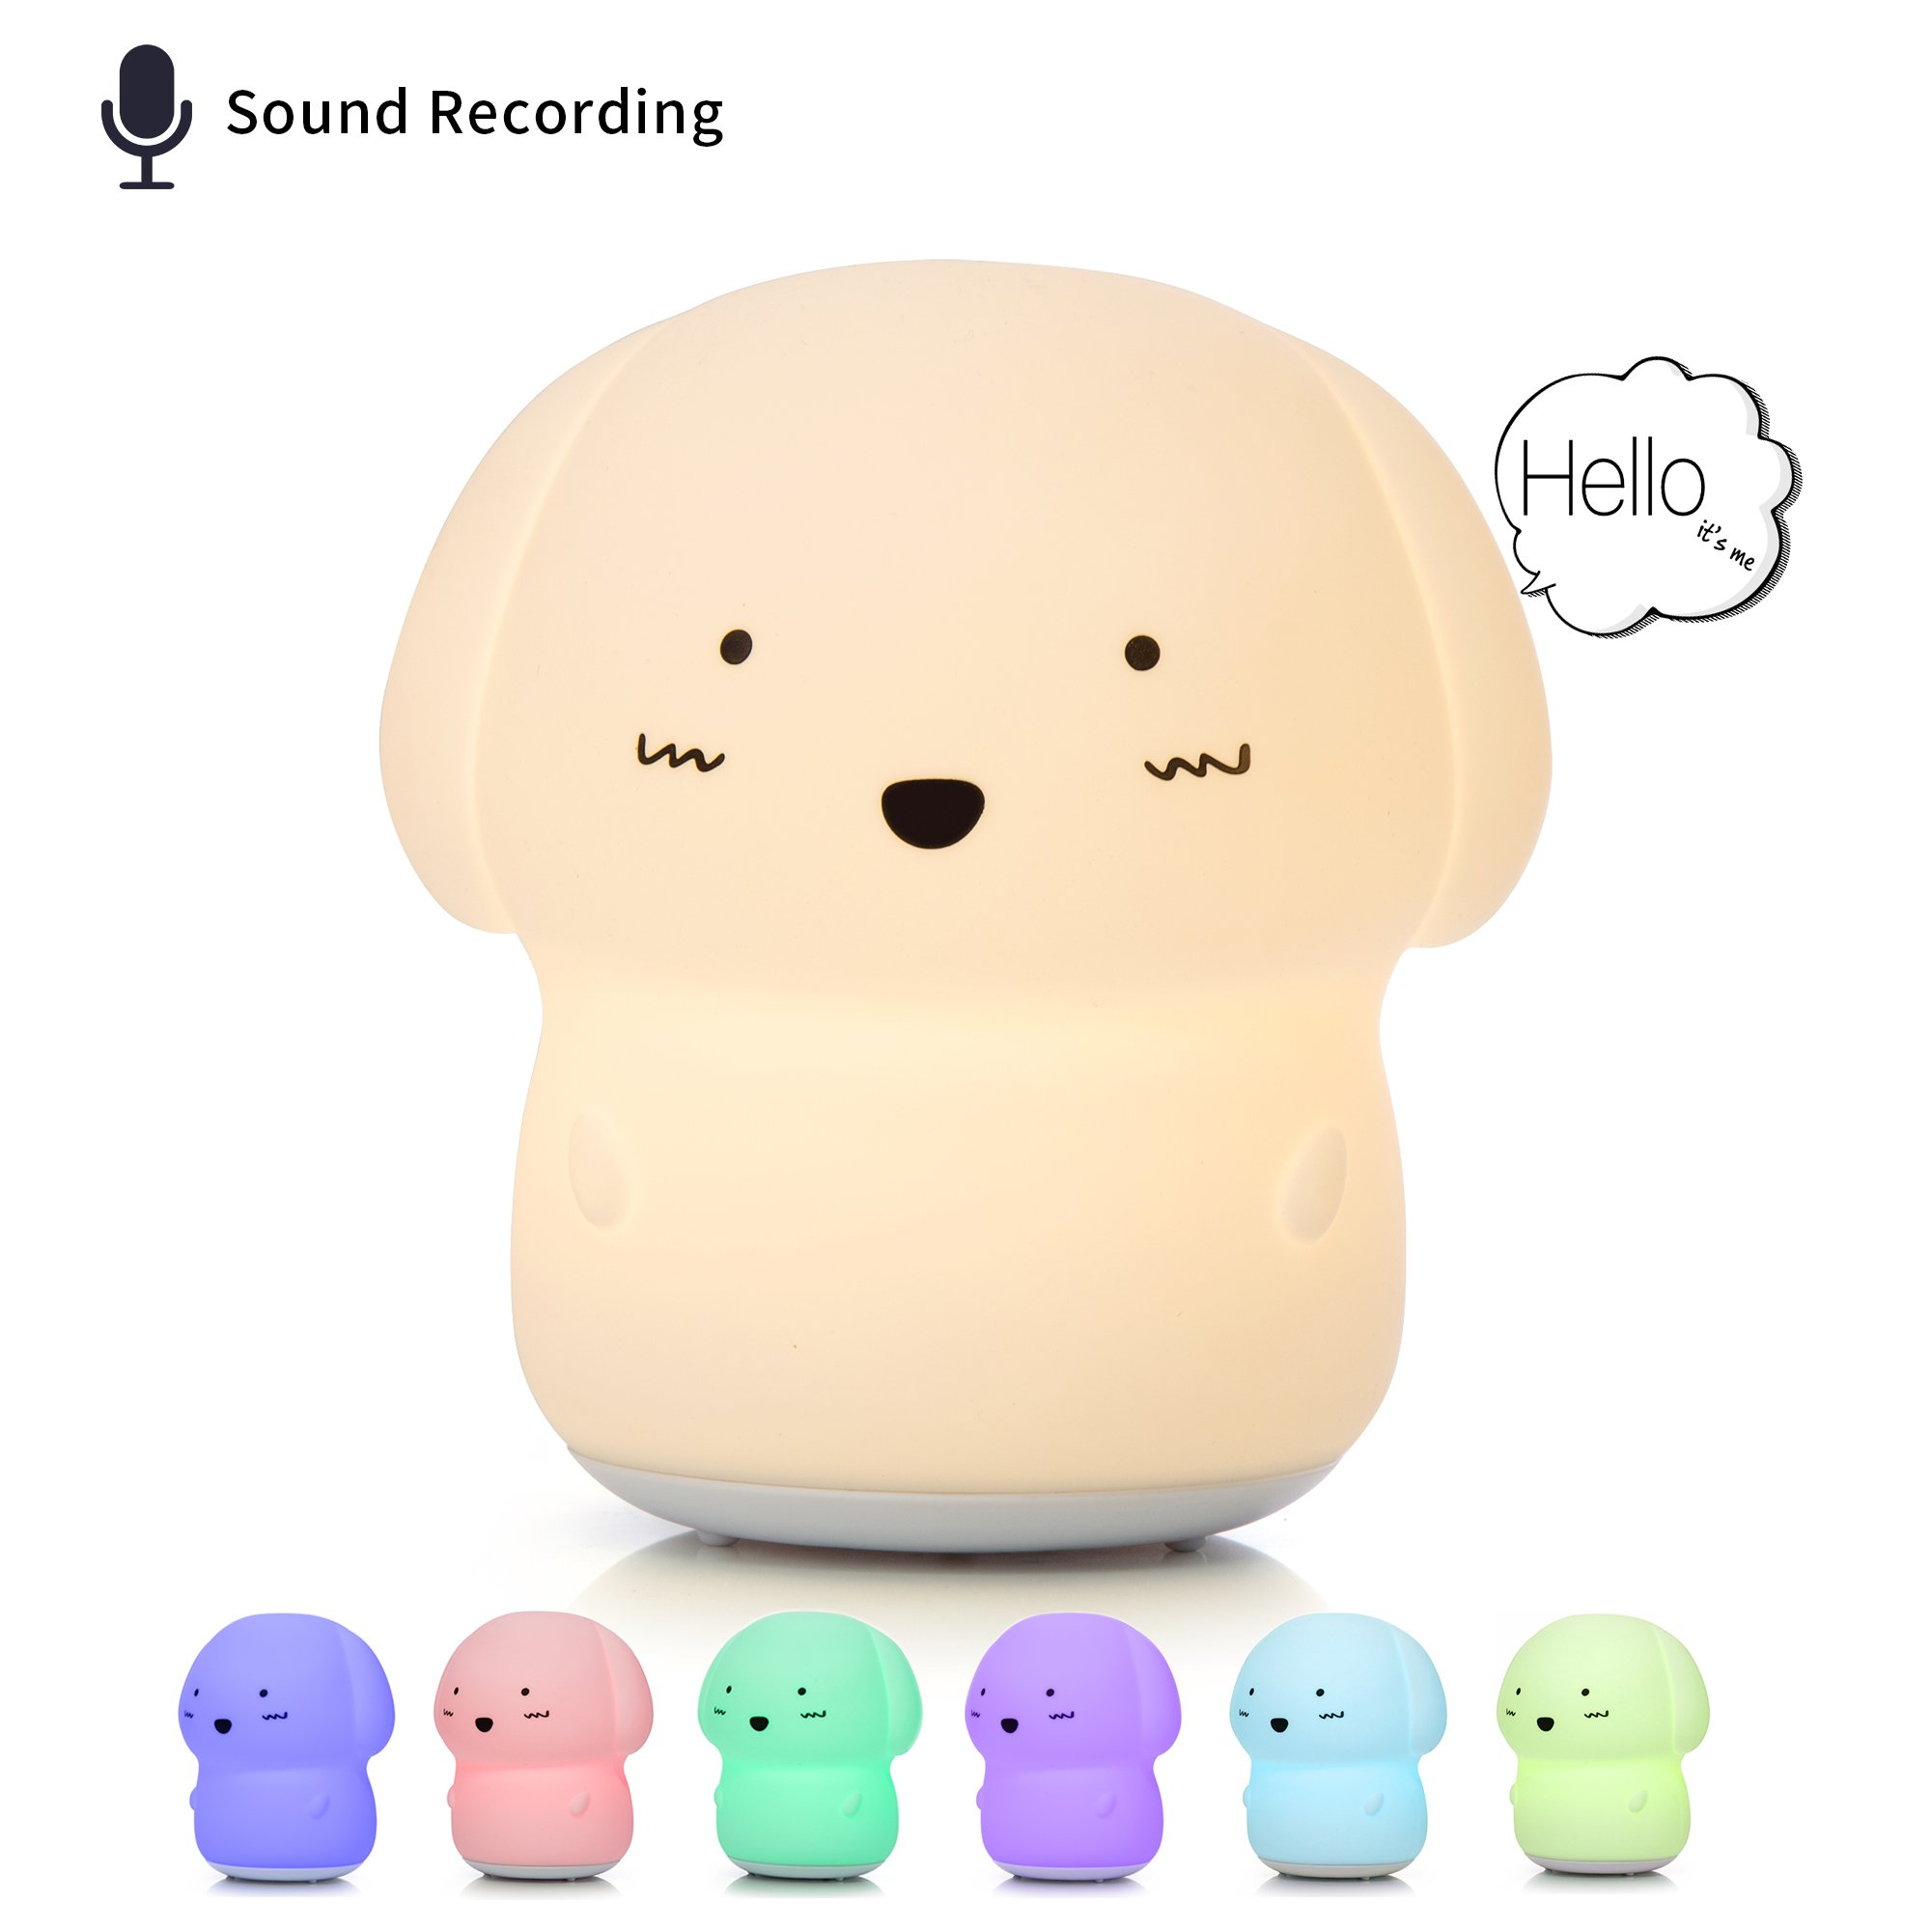 [NEW] Night Light for Children, Voice Recorder Lamp, Cute Baby Toys, Puppy Dog Toys for Girls/Boys/Toddler, Nursery Bedroom Decor, Gift Ideas for 3 to 12 Year Old Girl.